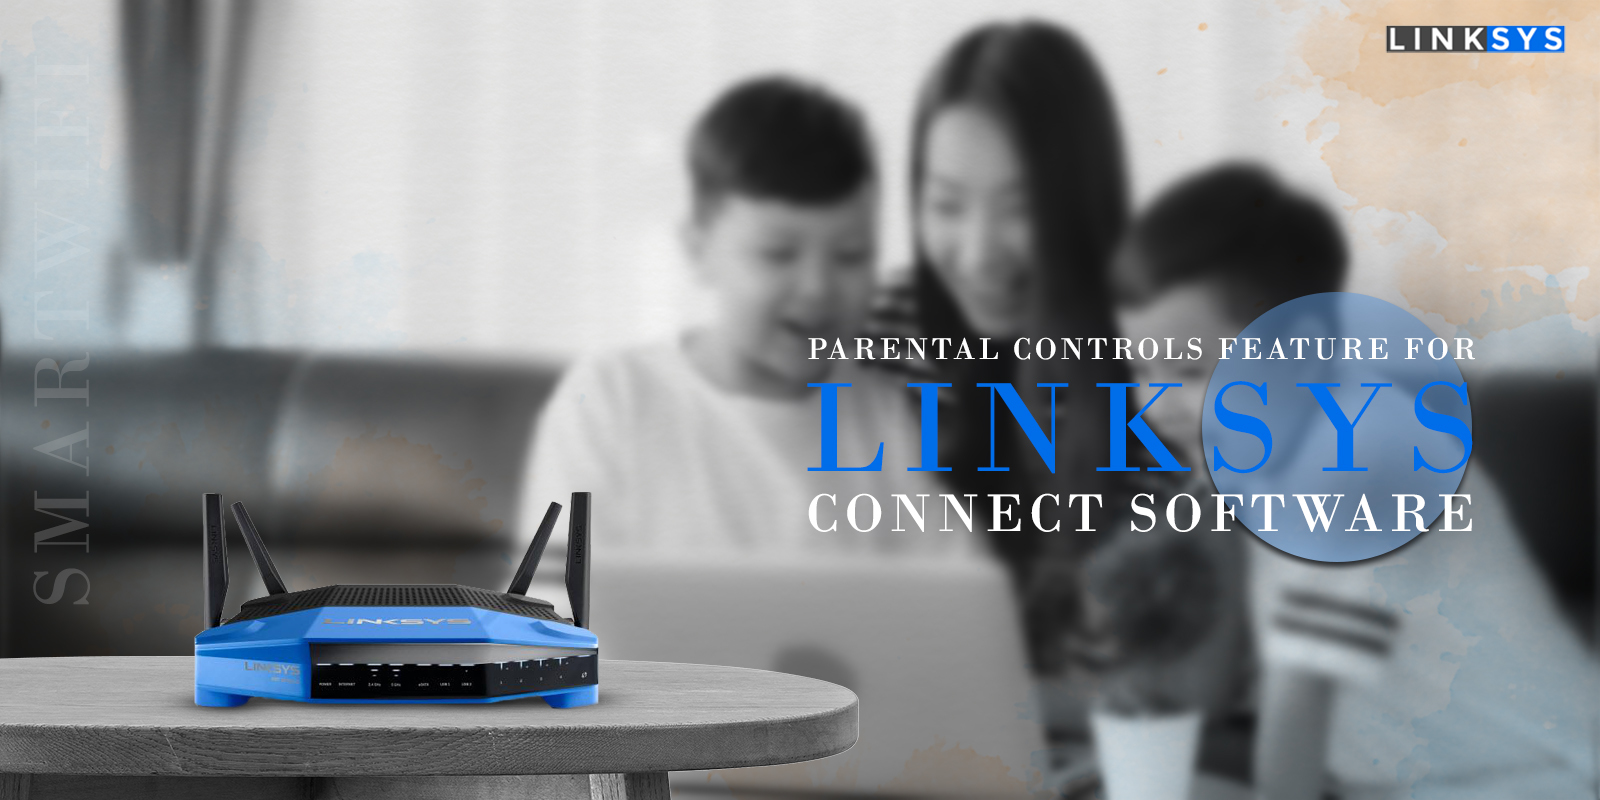 Linksys connect software